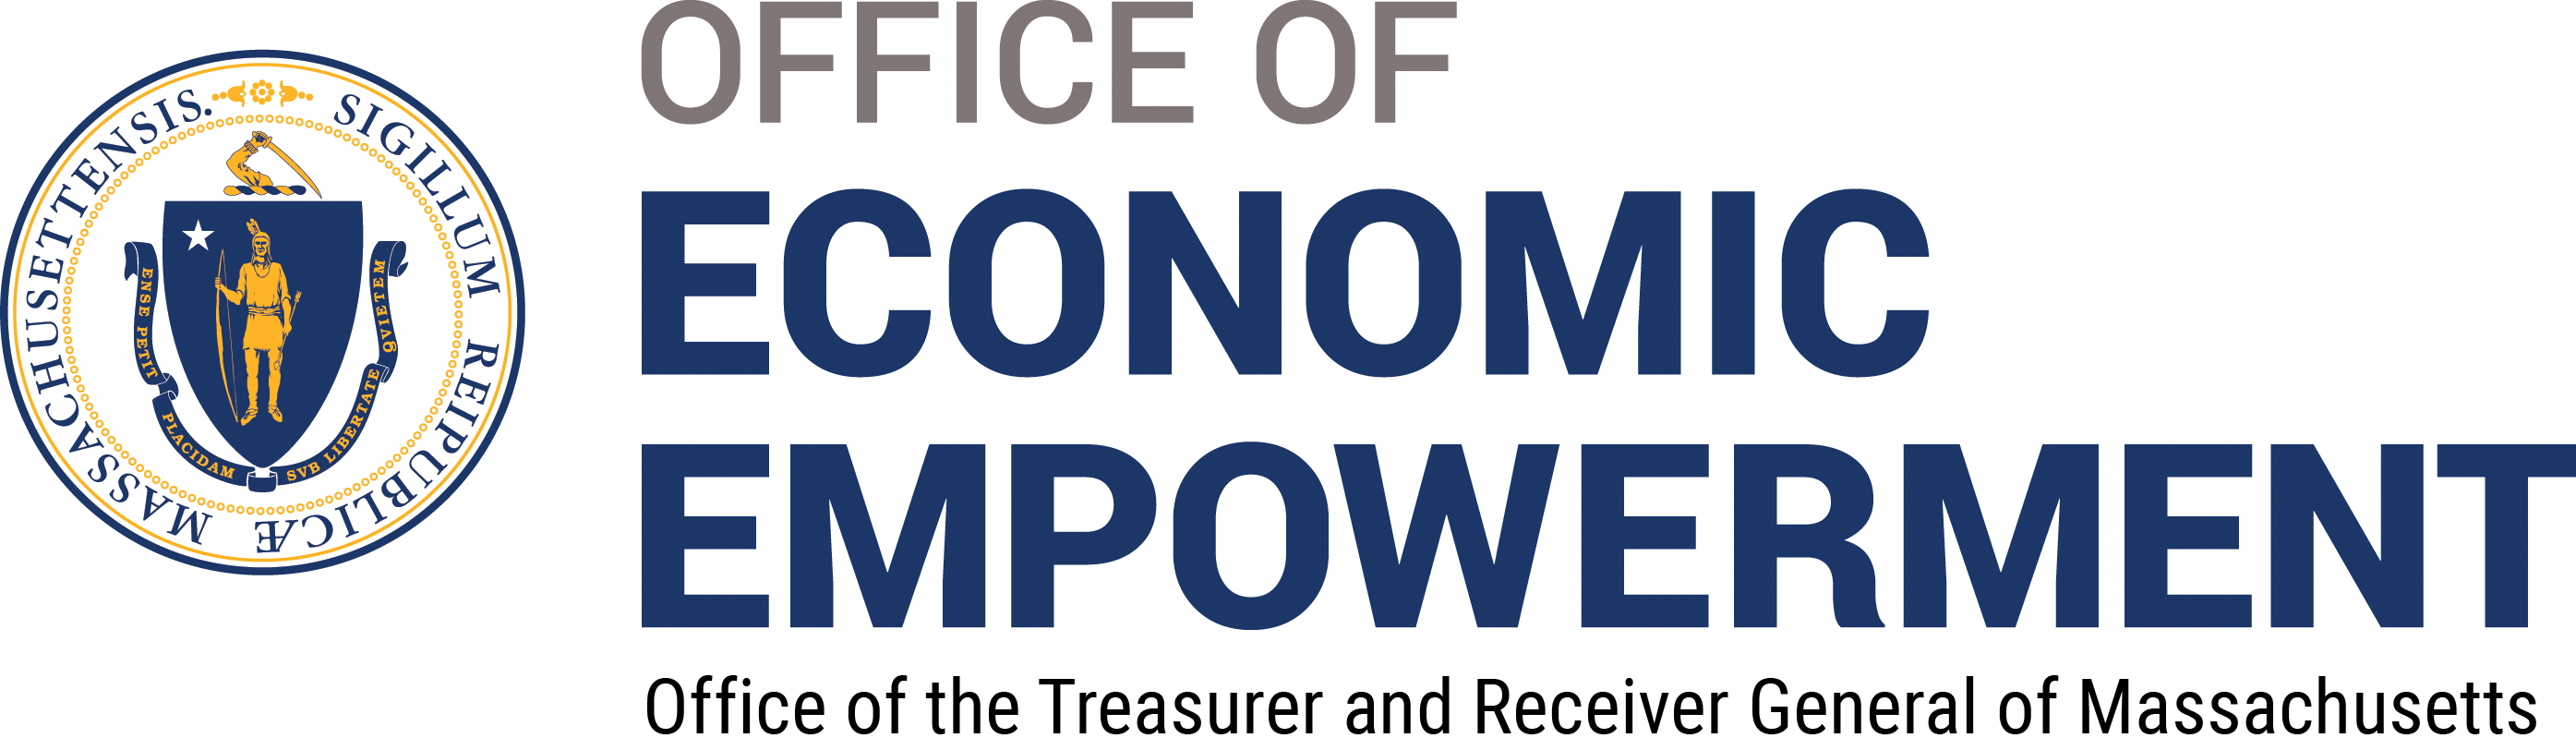 Office of Economic Empowerment logo